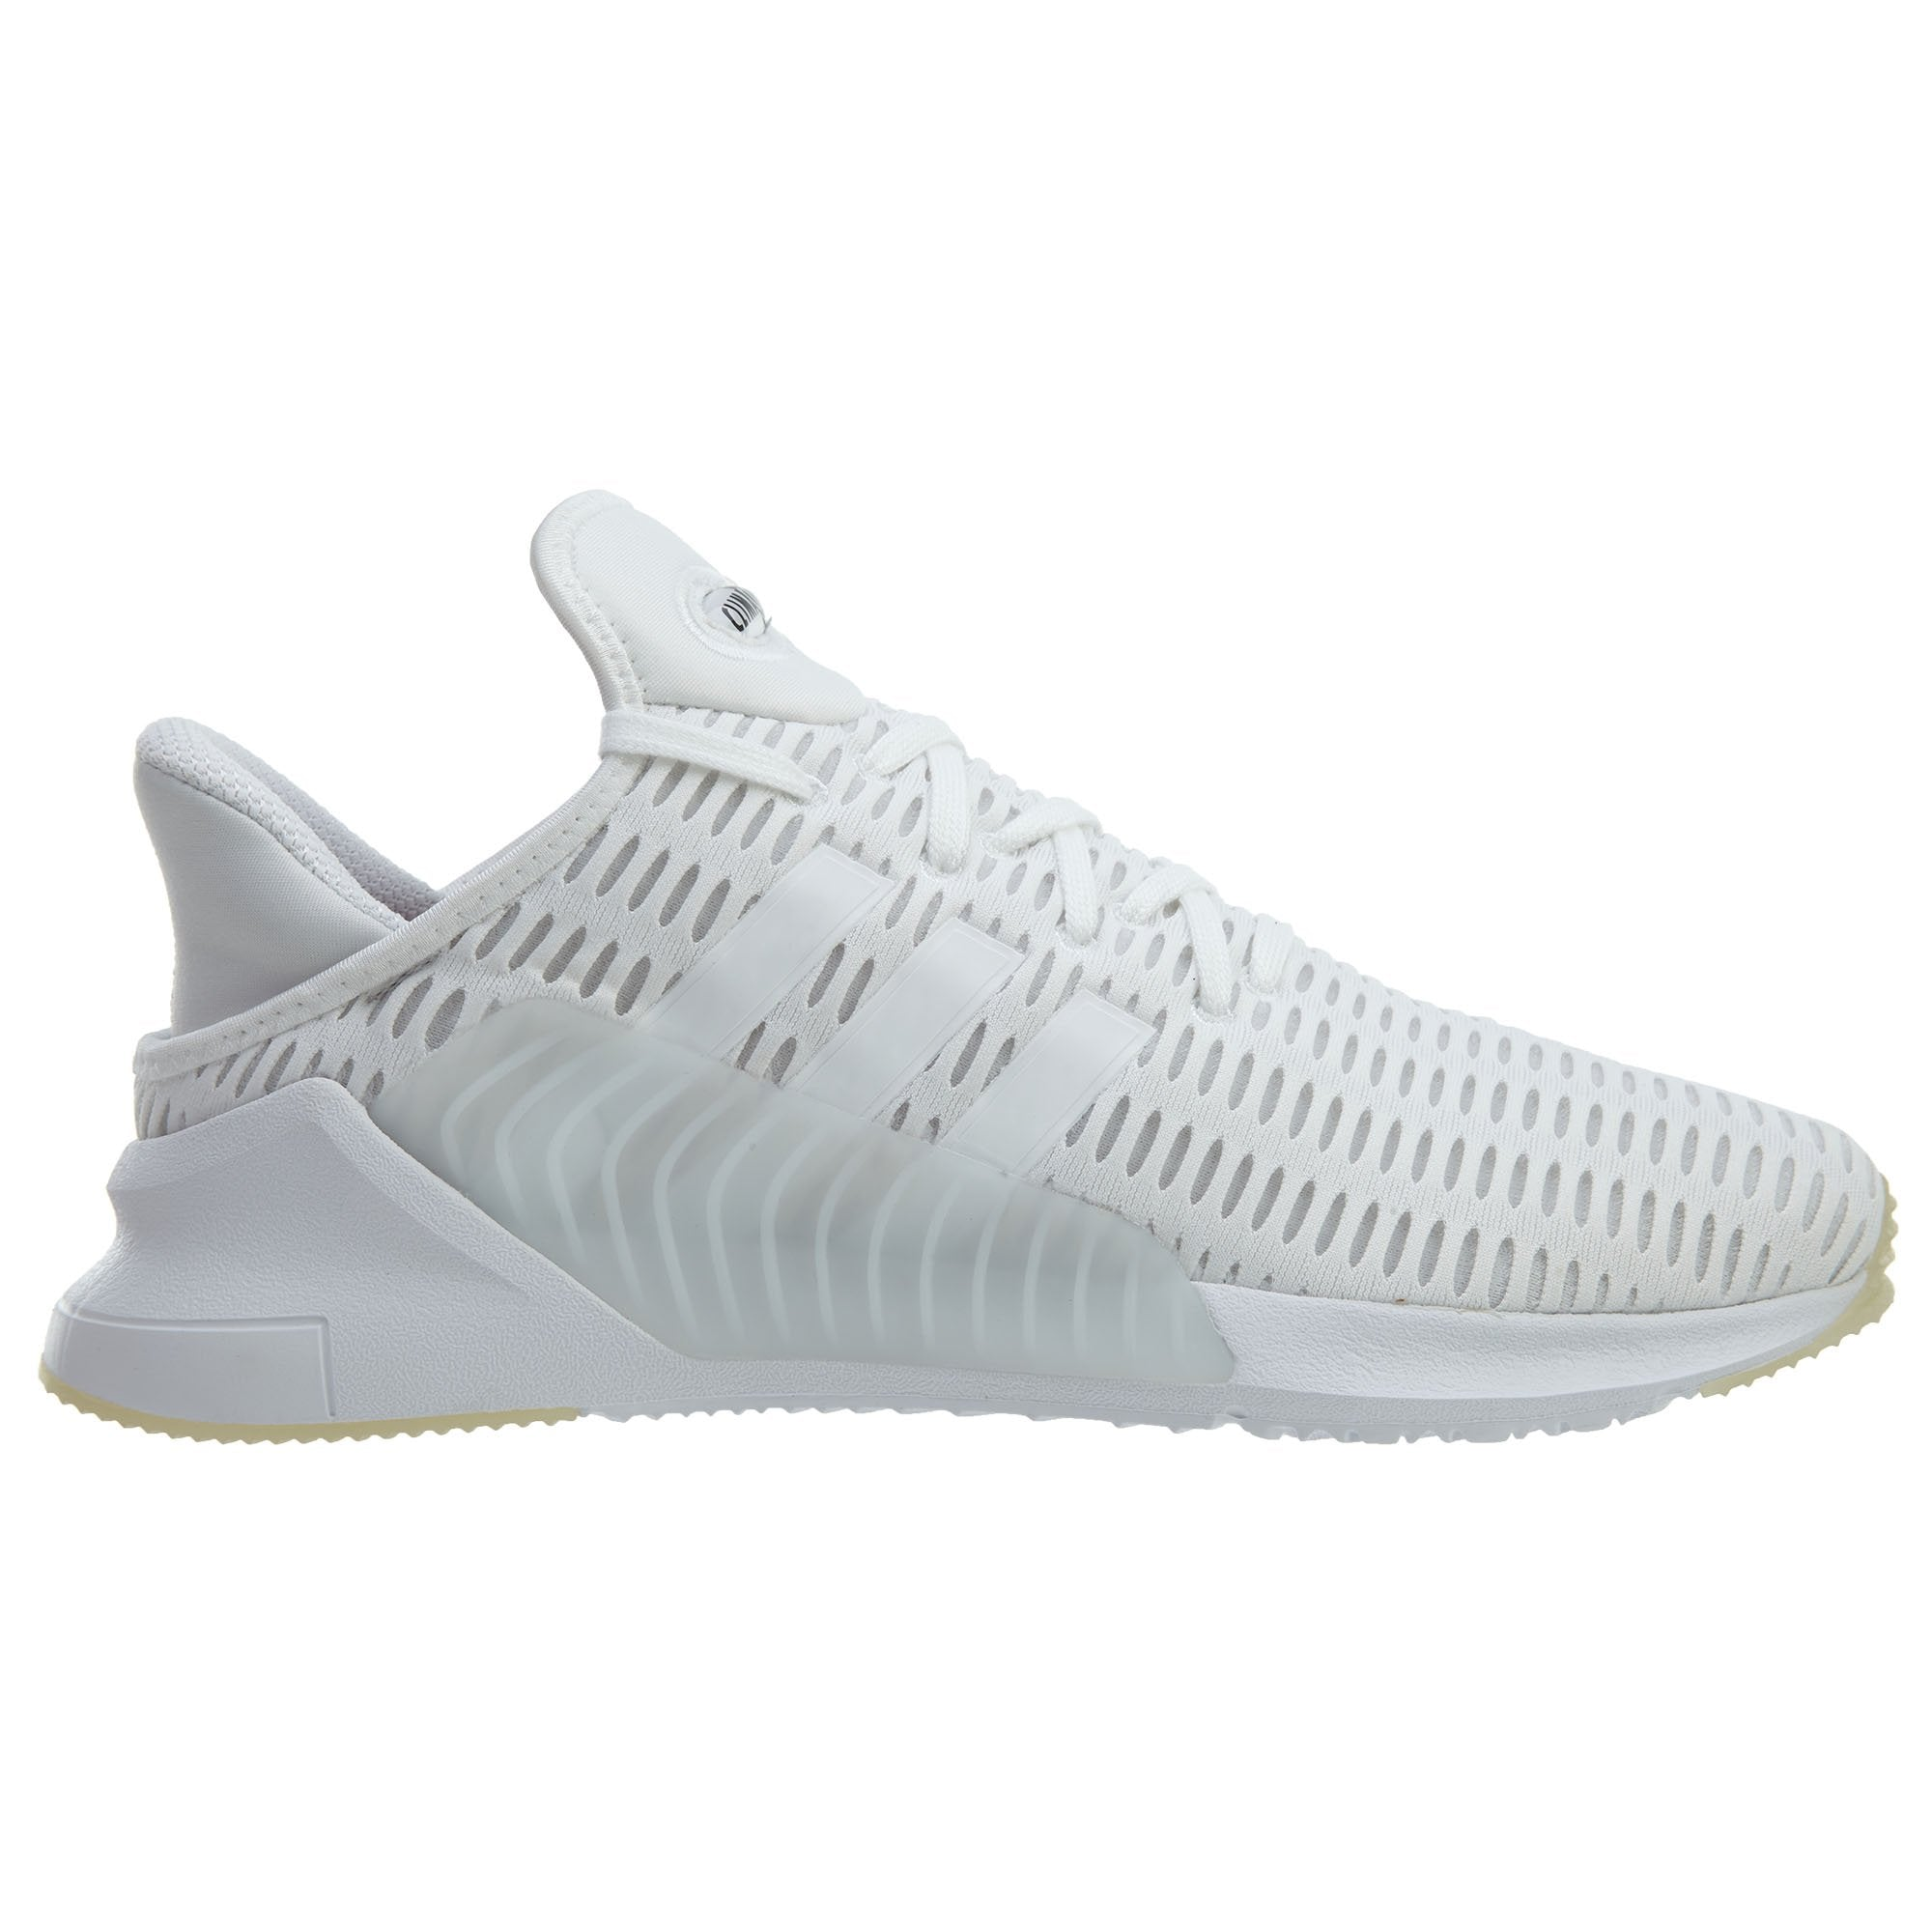 more photos fe5a3 5f27d Adidas Climacool 02/17 Mens Style : Bz0248